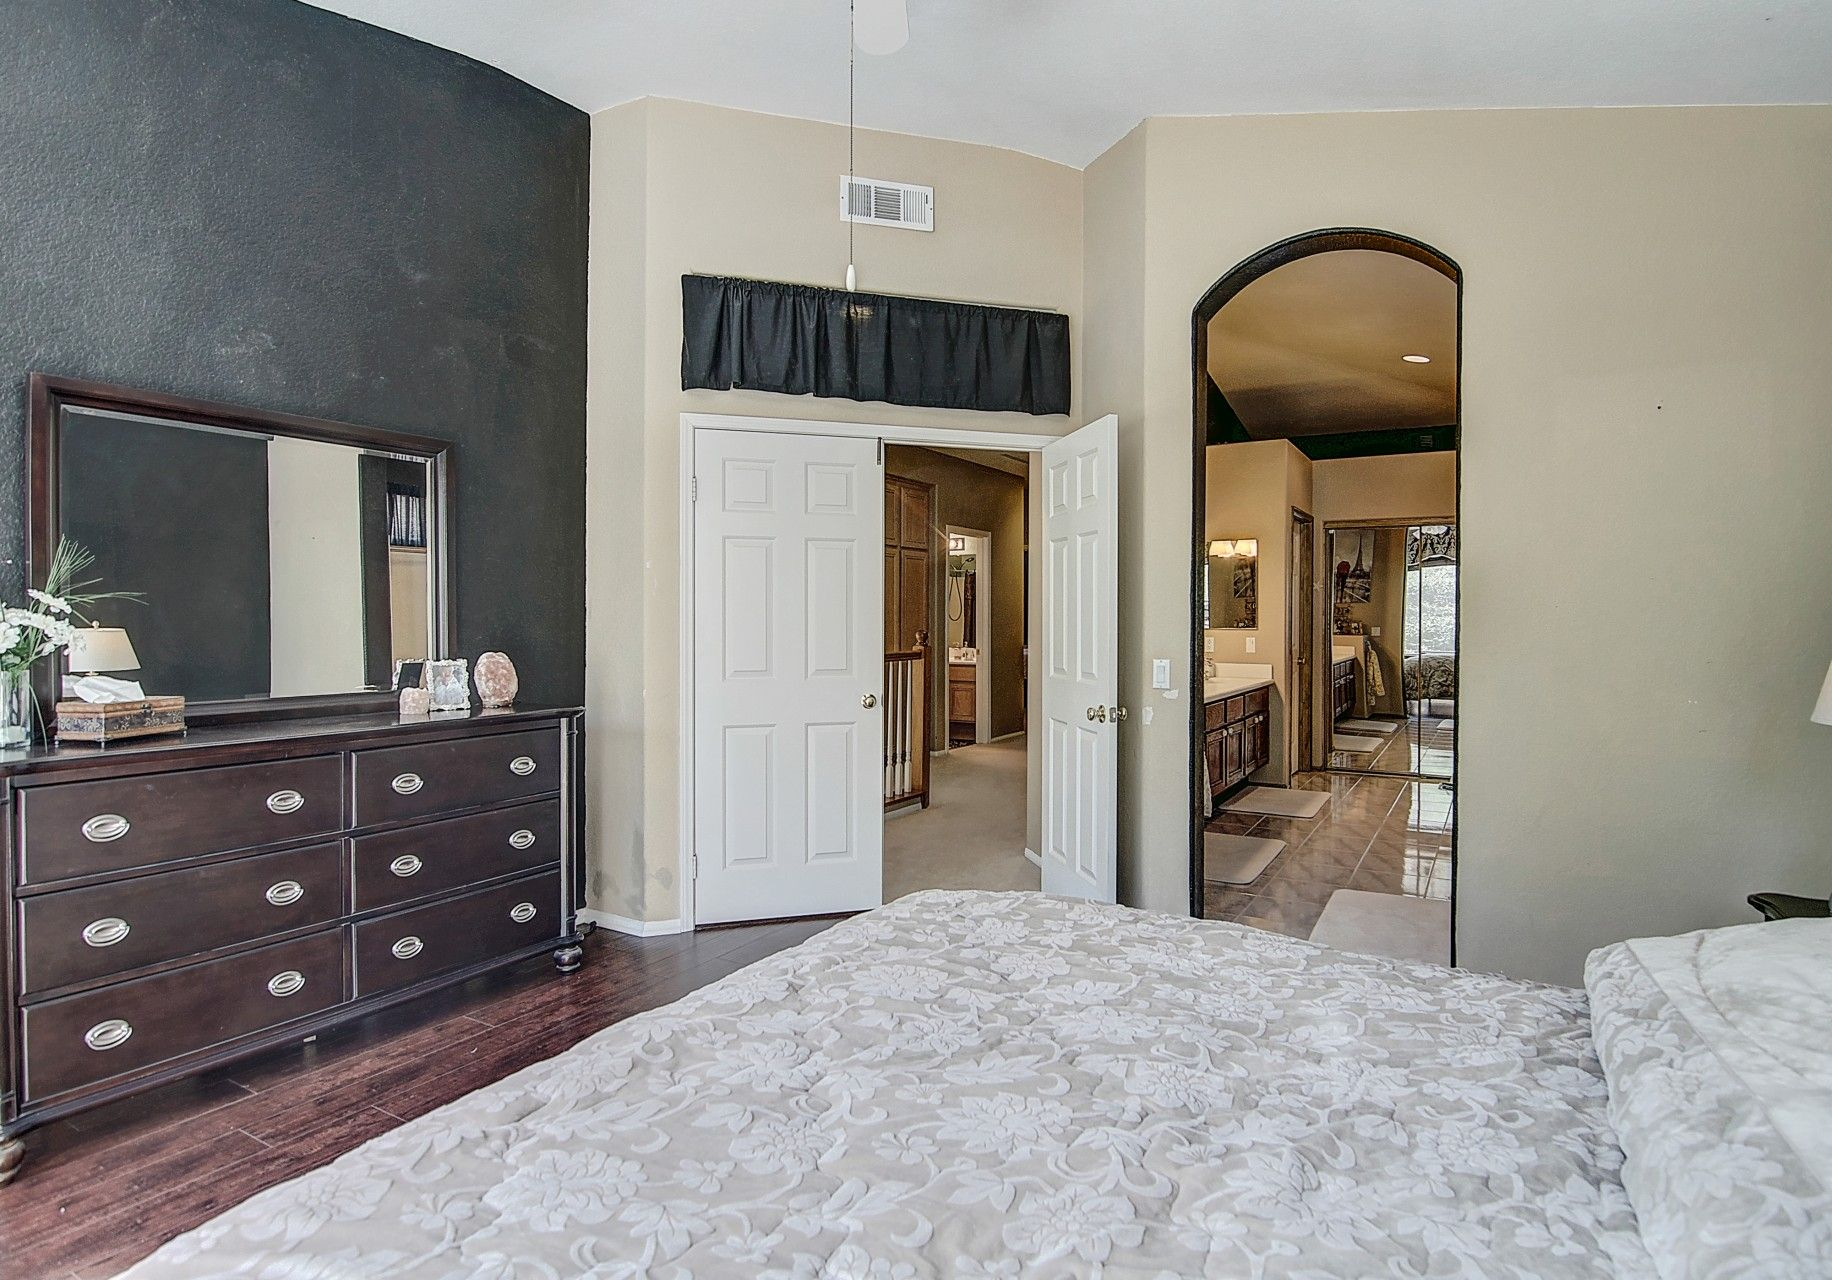 Expansive, Inviting Master Suite in this stunning Aliso Viejo California Home